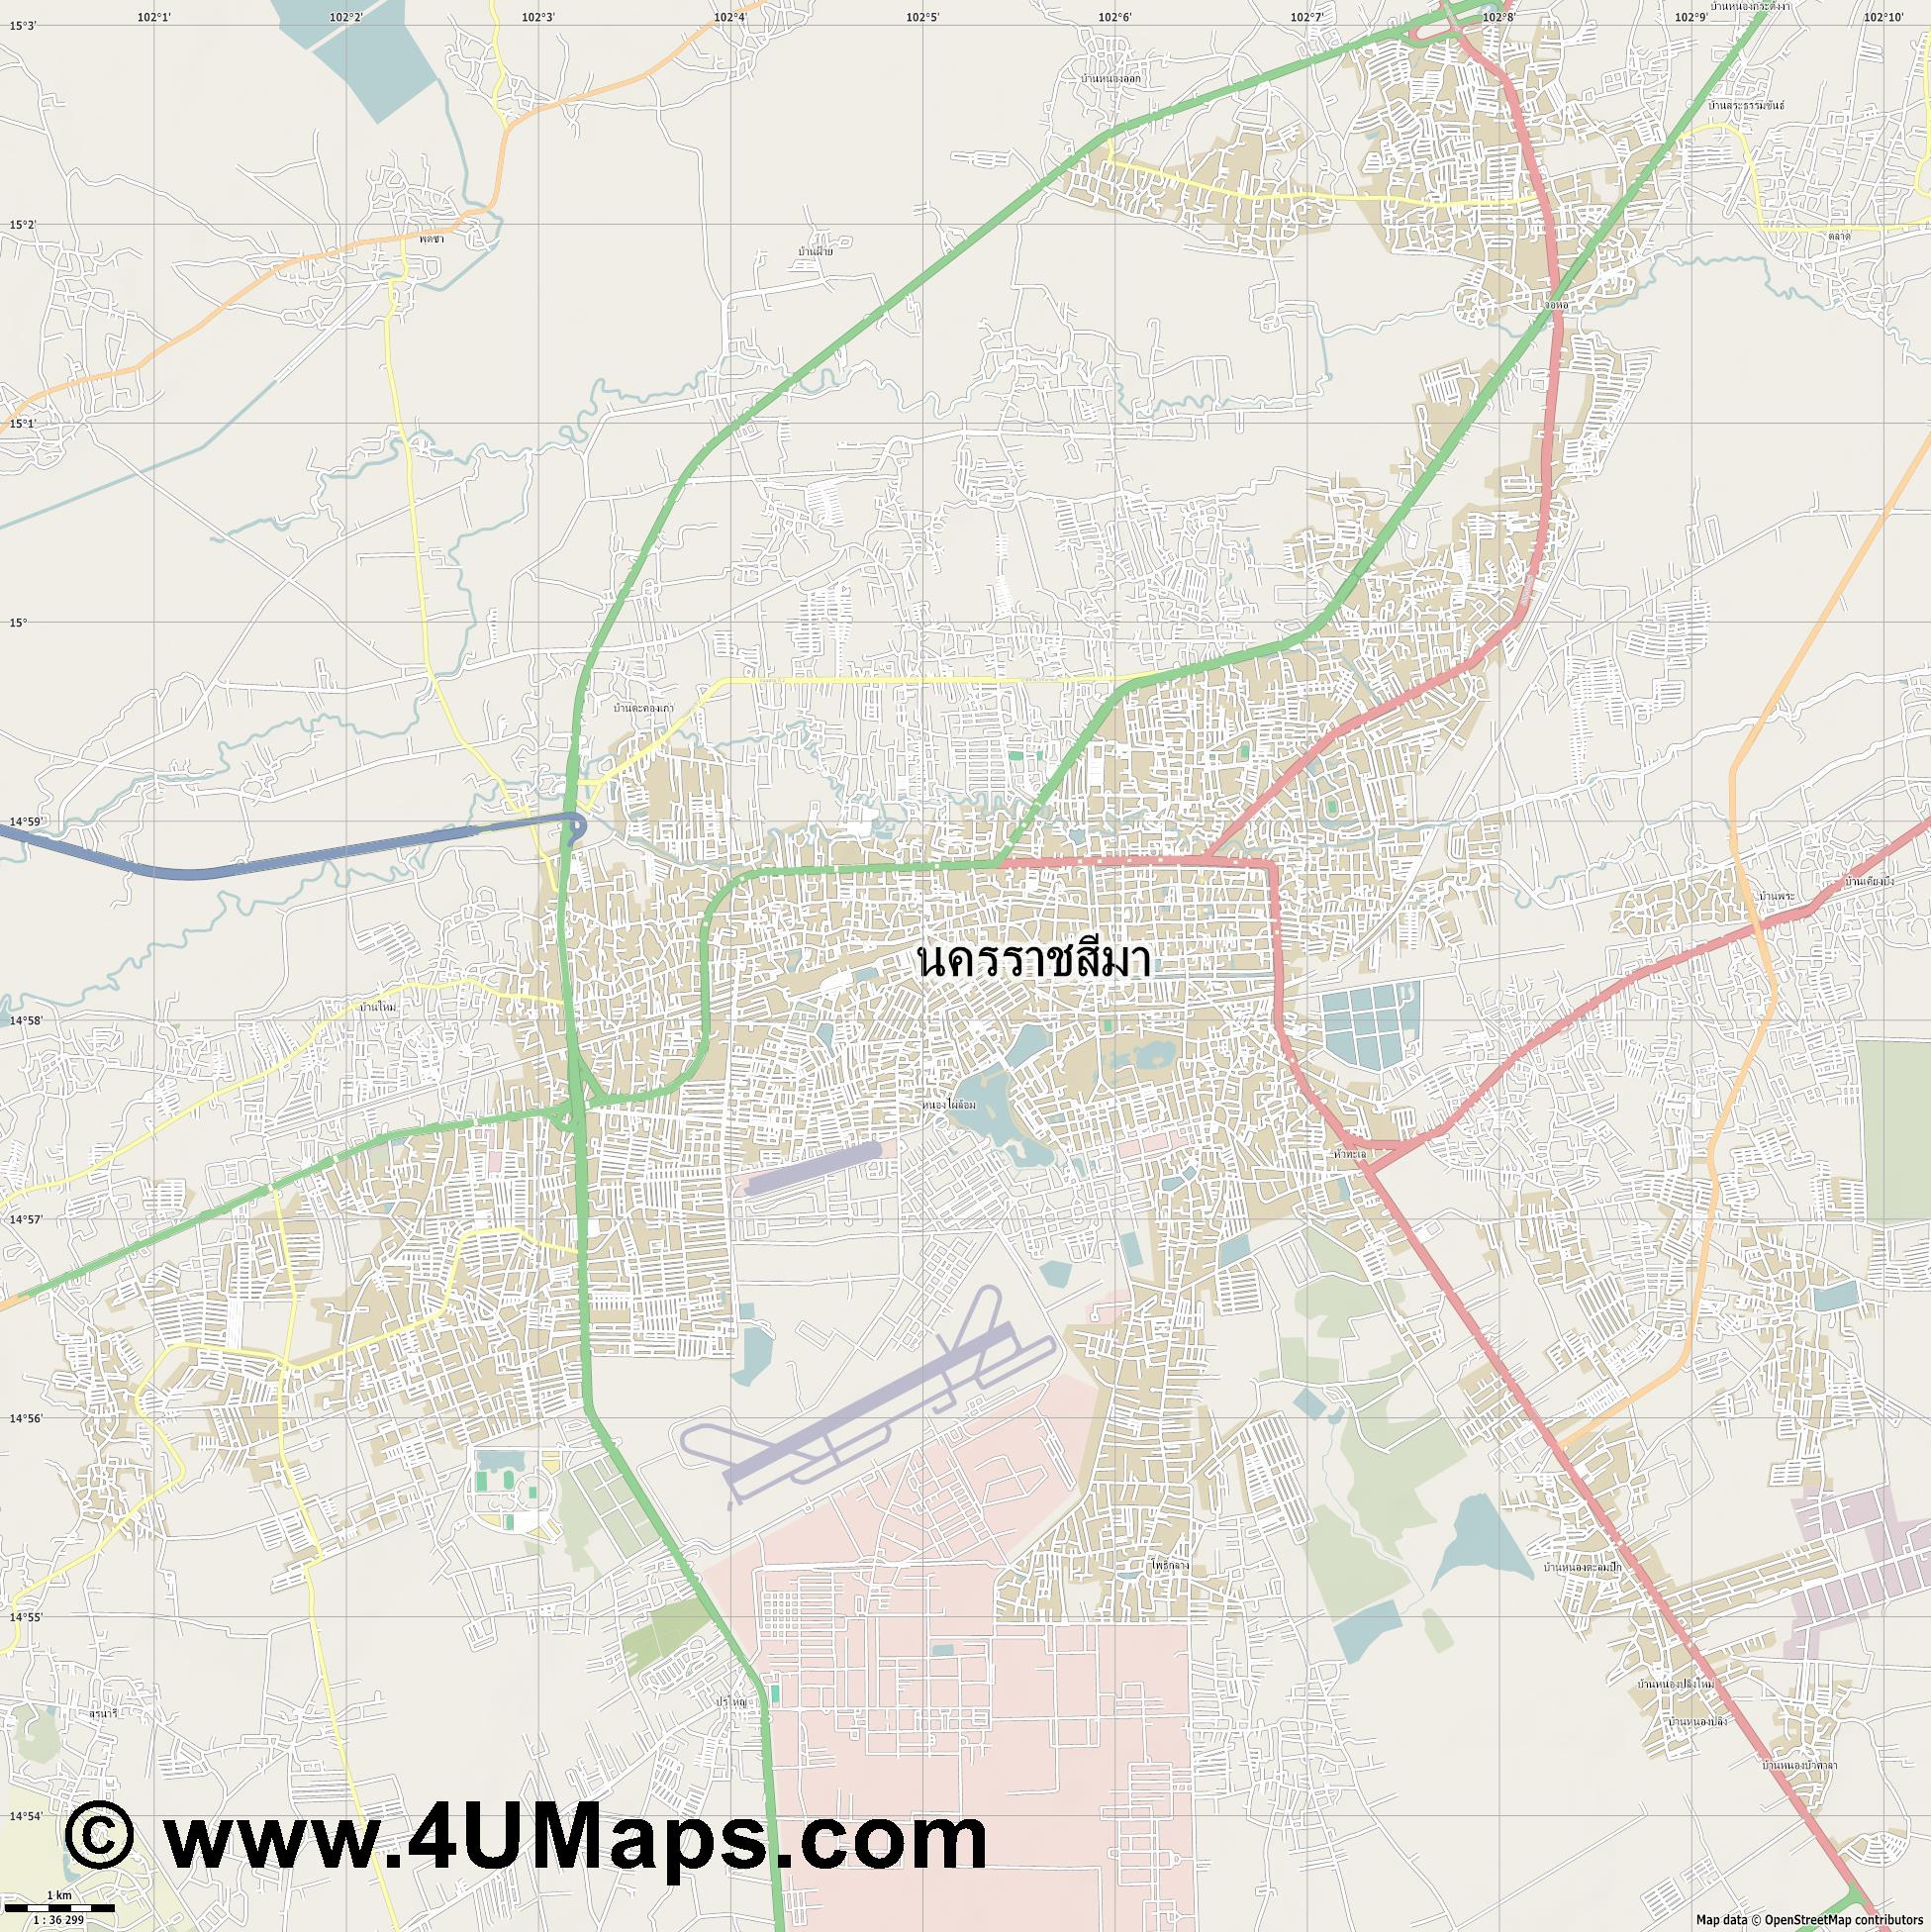 นครราชส มา Nakhon Ratchasima  jpg high detail, large area preview vector city map